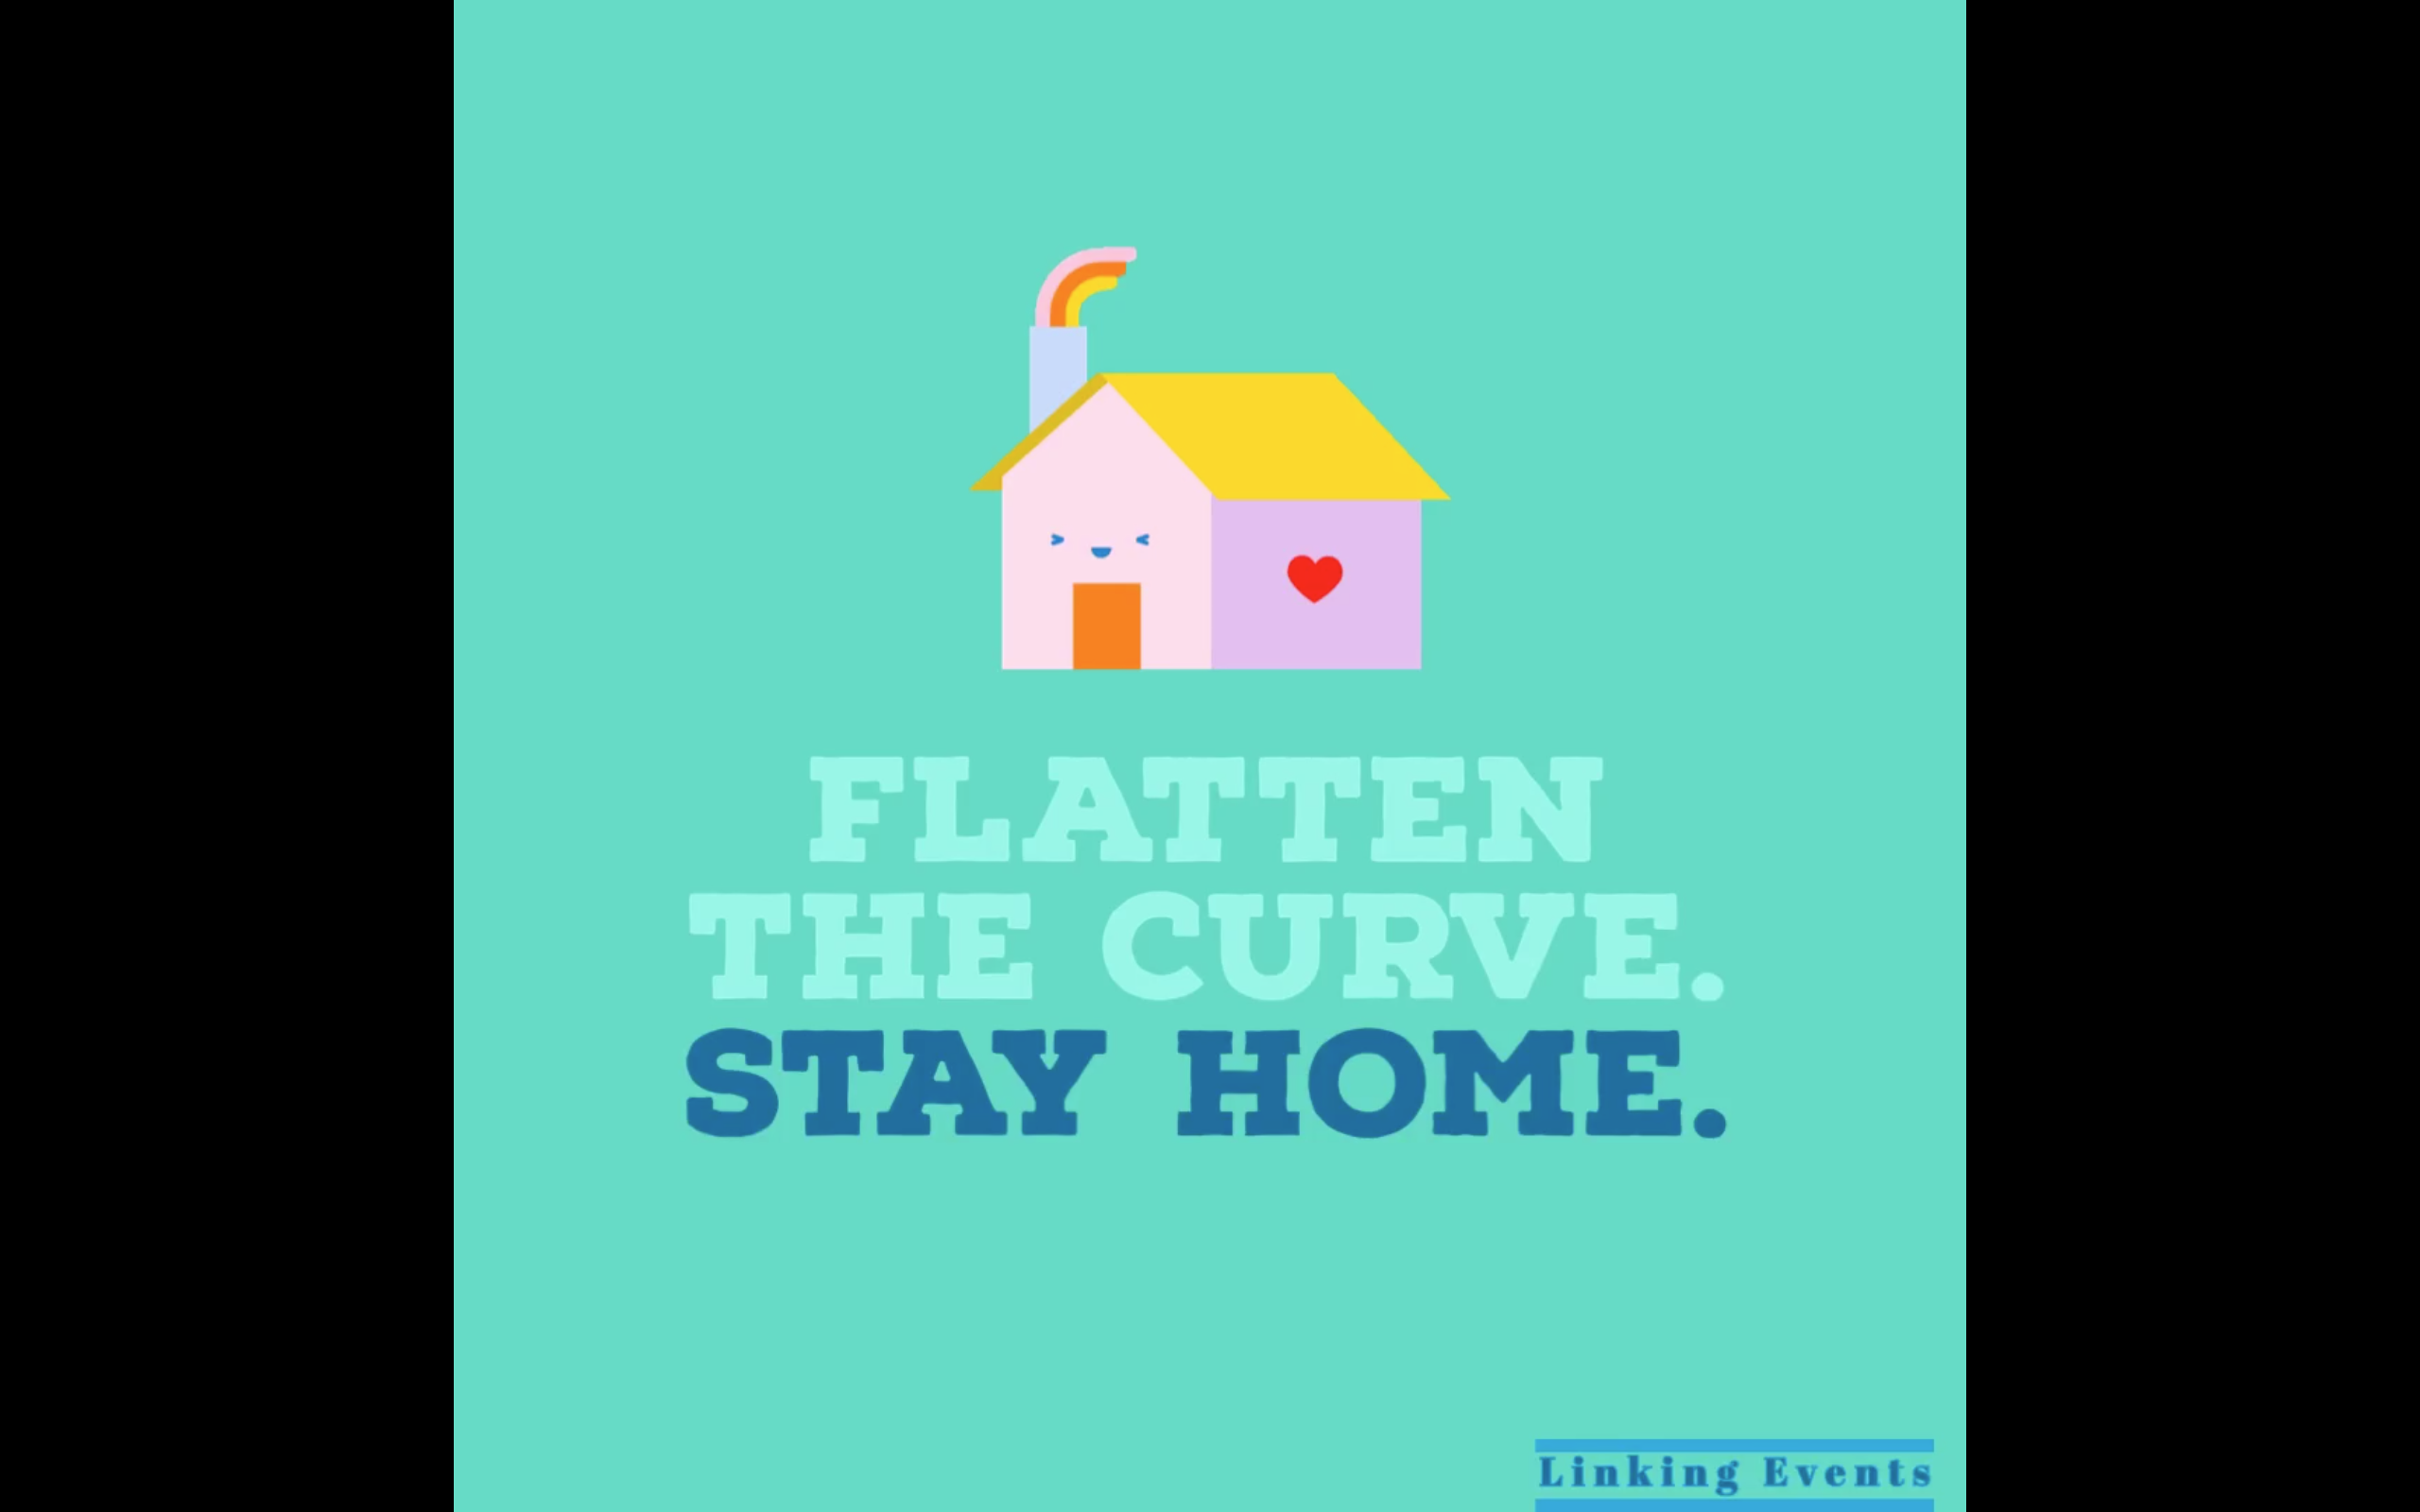 Flatten The Curve. Stay Home.